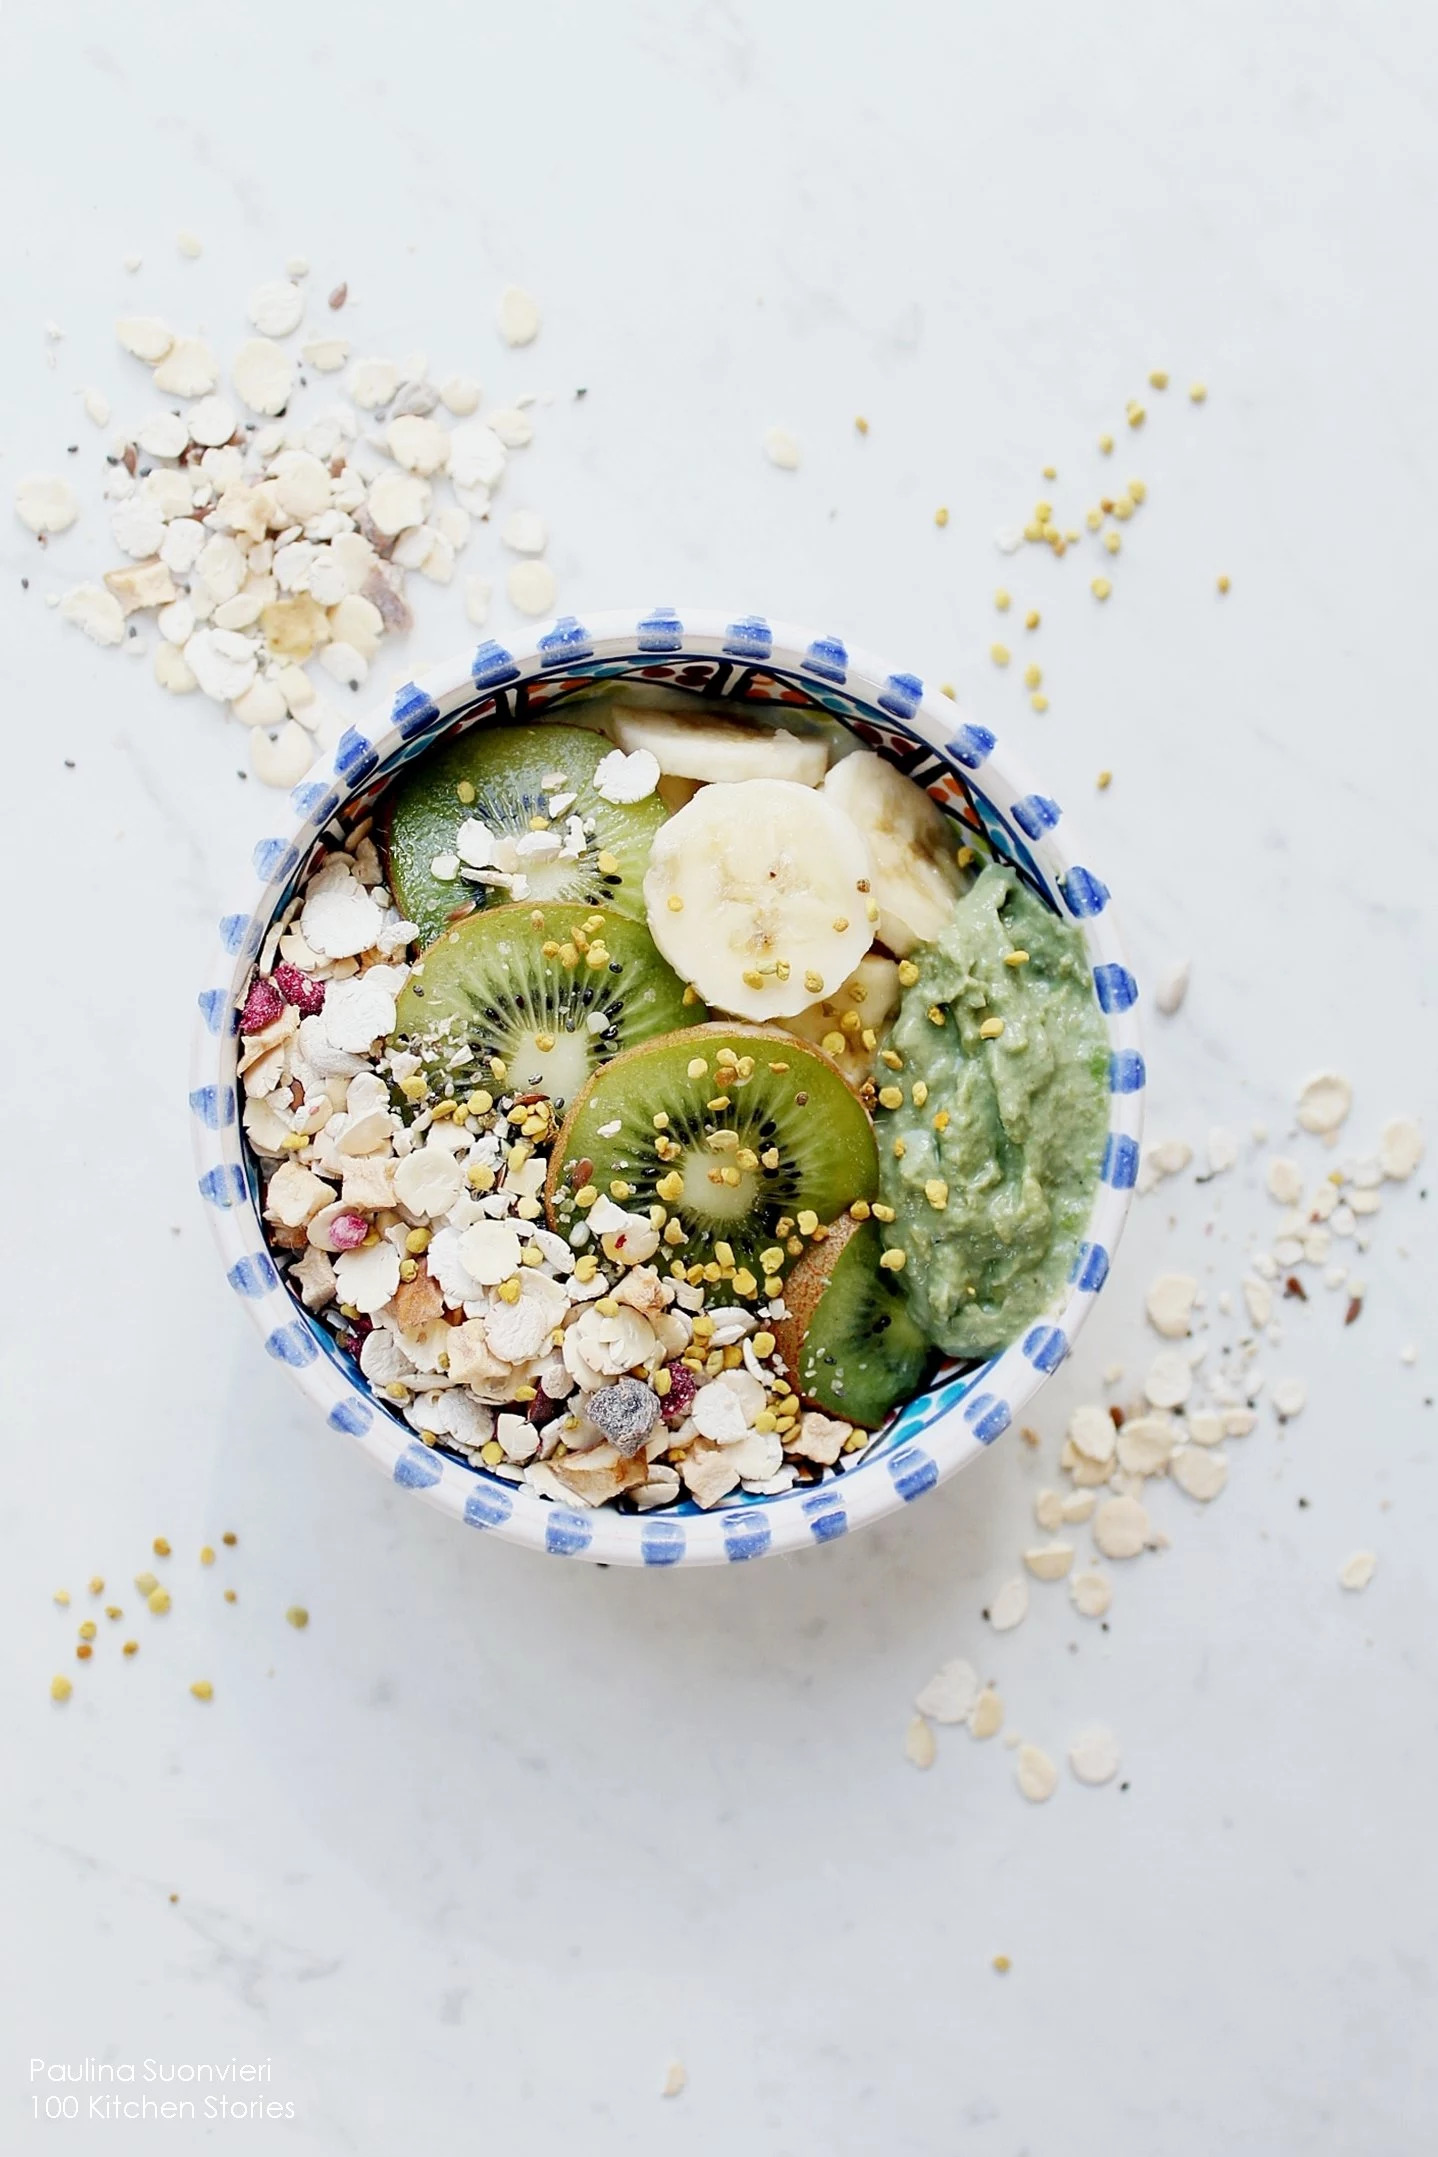 Vegan Oatmeal with Protein RIch Granola & Raw Avocado Cream